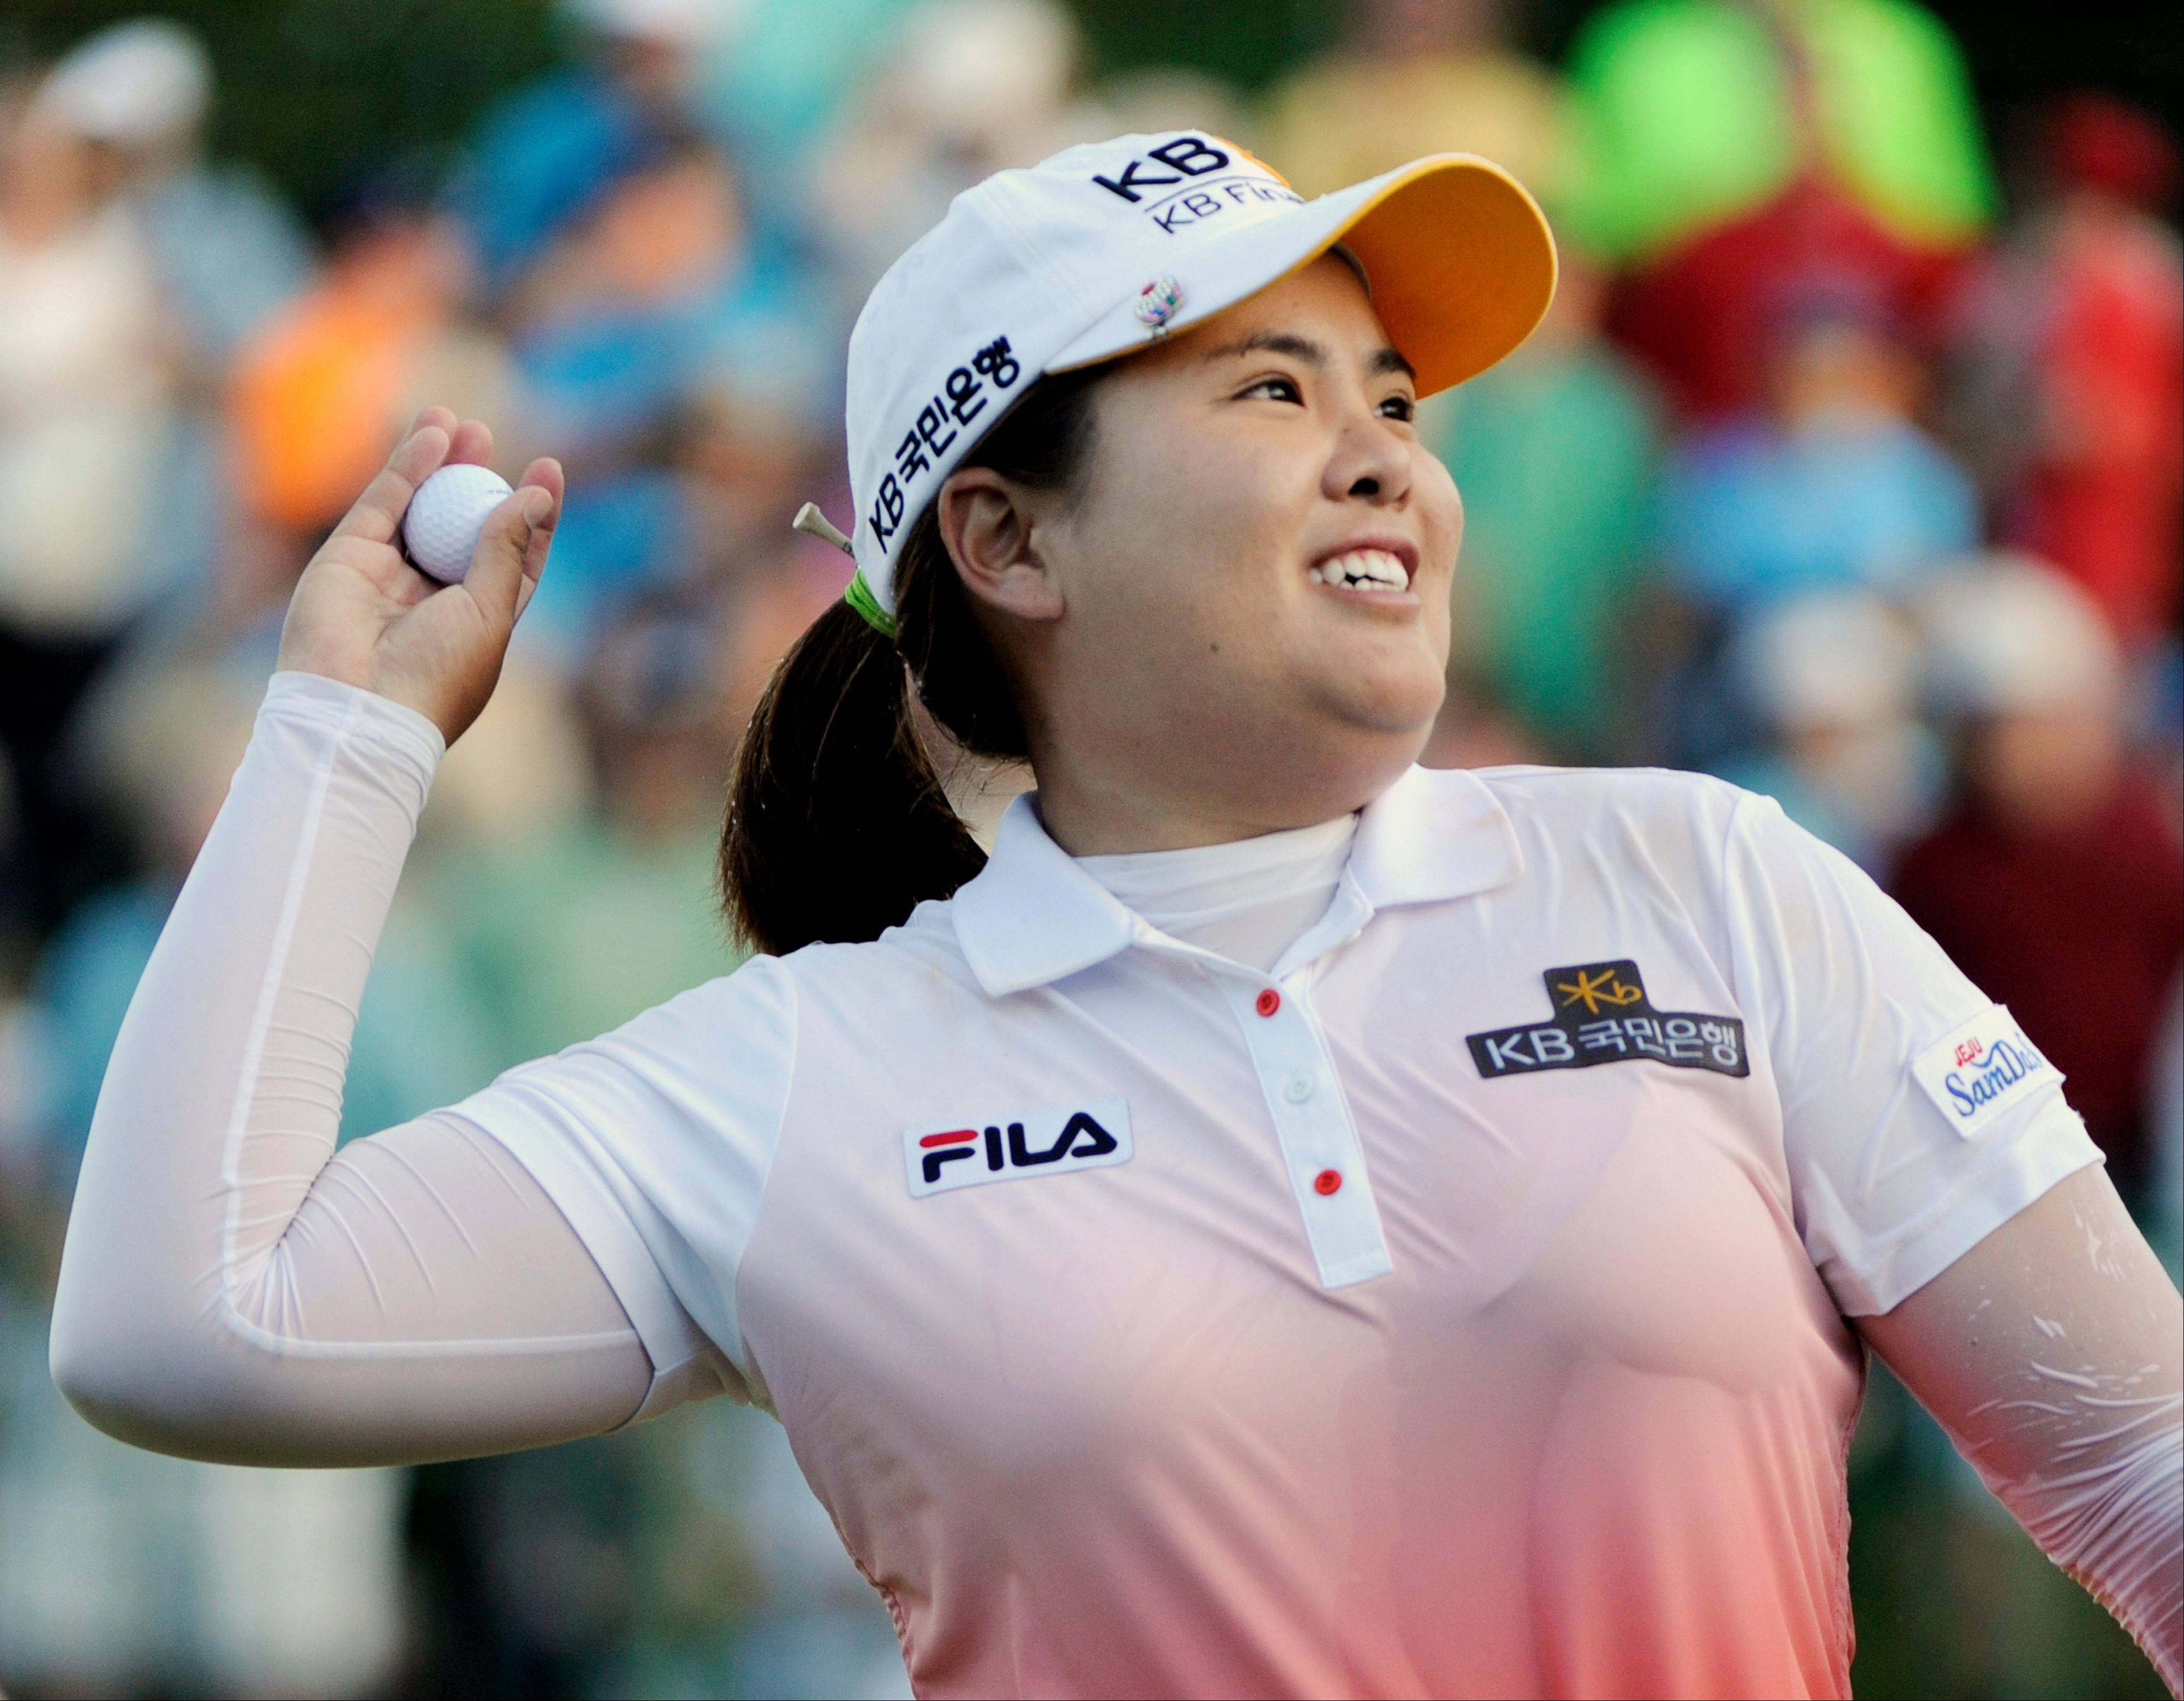 Inbee Park throws the ball into the stands after winning a playoff for the LPGA Championship on June 9.